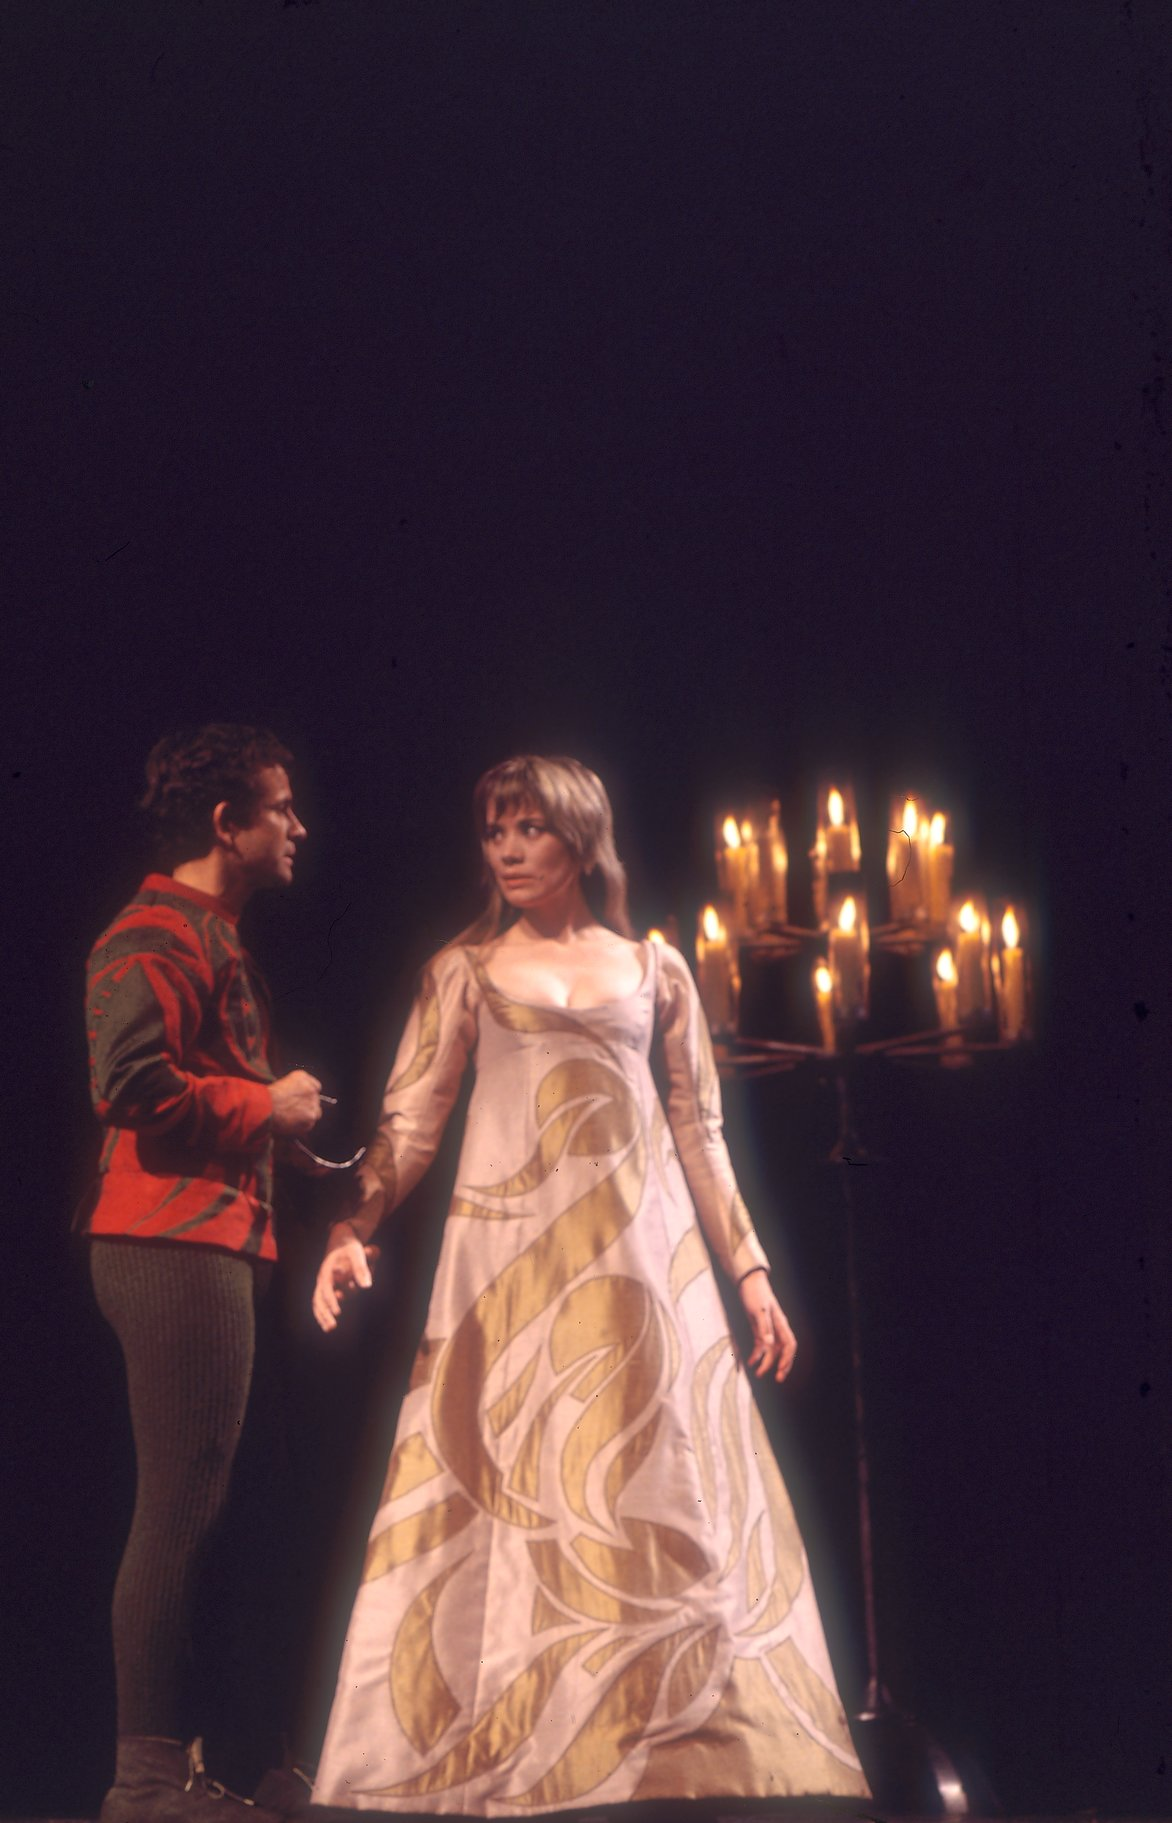 The lovers meet at the ball. Juliet is dressed in a white and gold dress and Romeo is dressed in red, there are candles behind them.